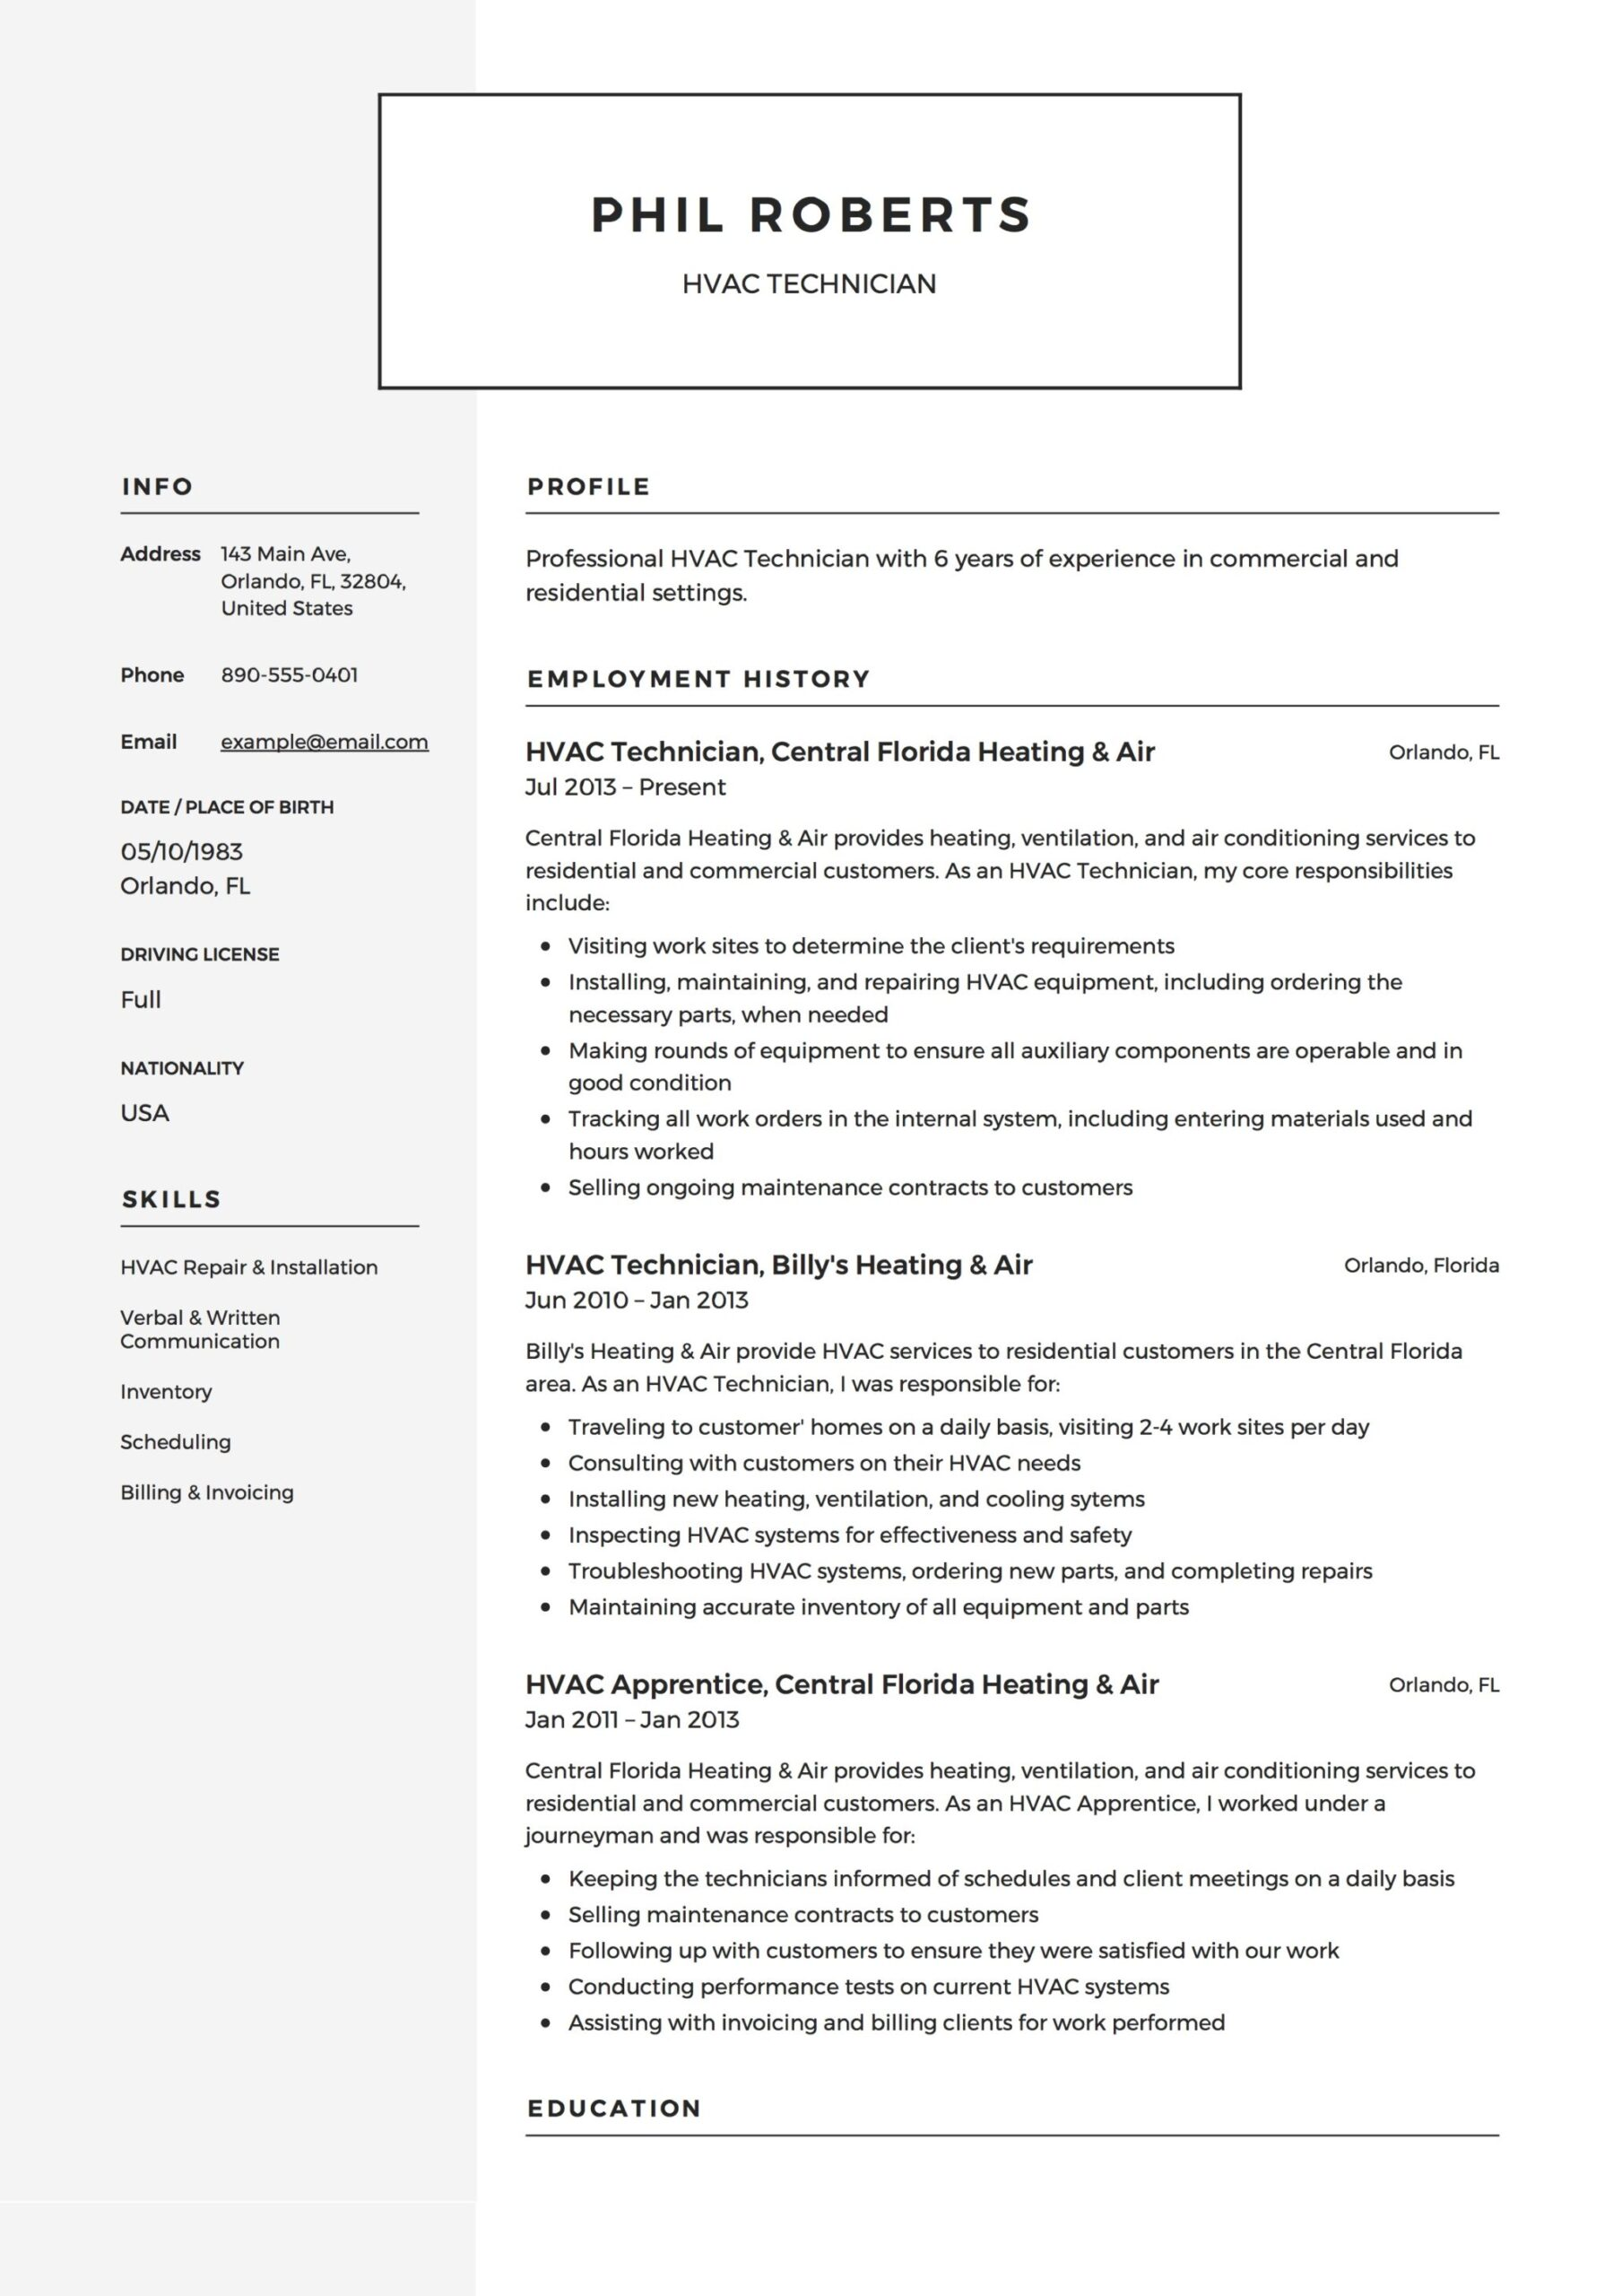 hvac technician resume guide templates pdf word for air conditioning example police cover Resume Resume For Air Conditioning Technician